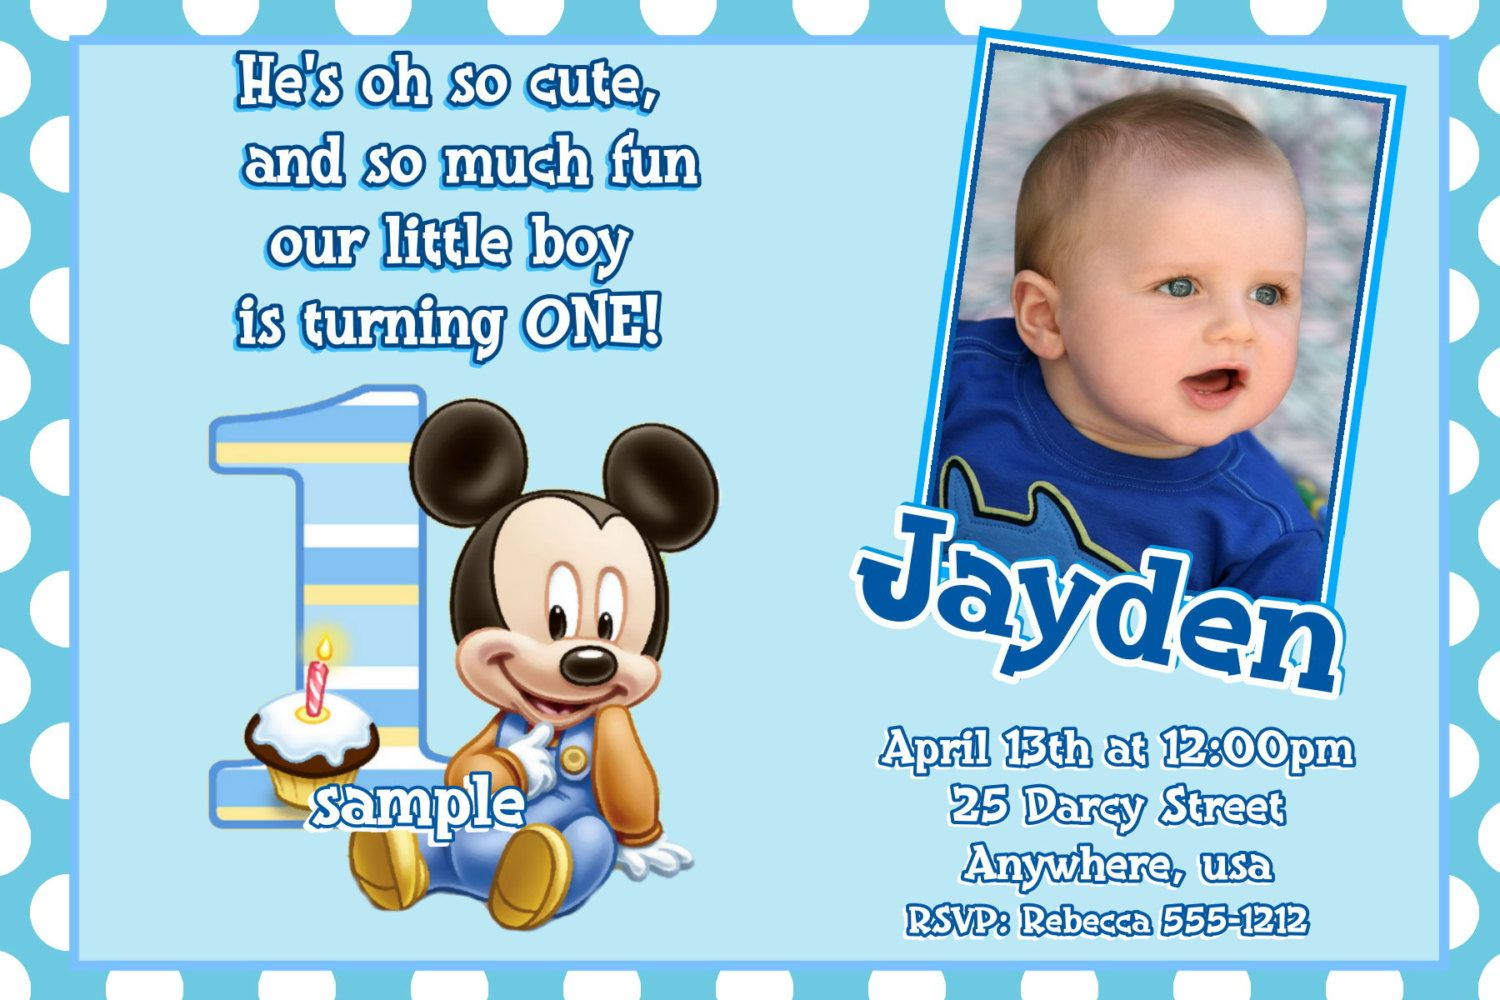 Invitation Wording For Mickey Mouse Party. Mickey Mouse 1st Birthday Invitations  Baby with cupcake topper